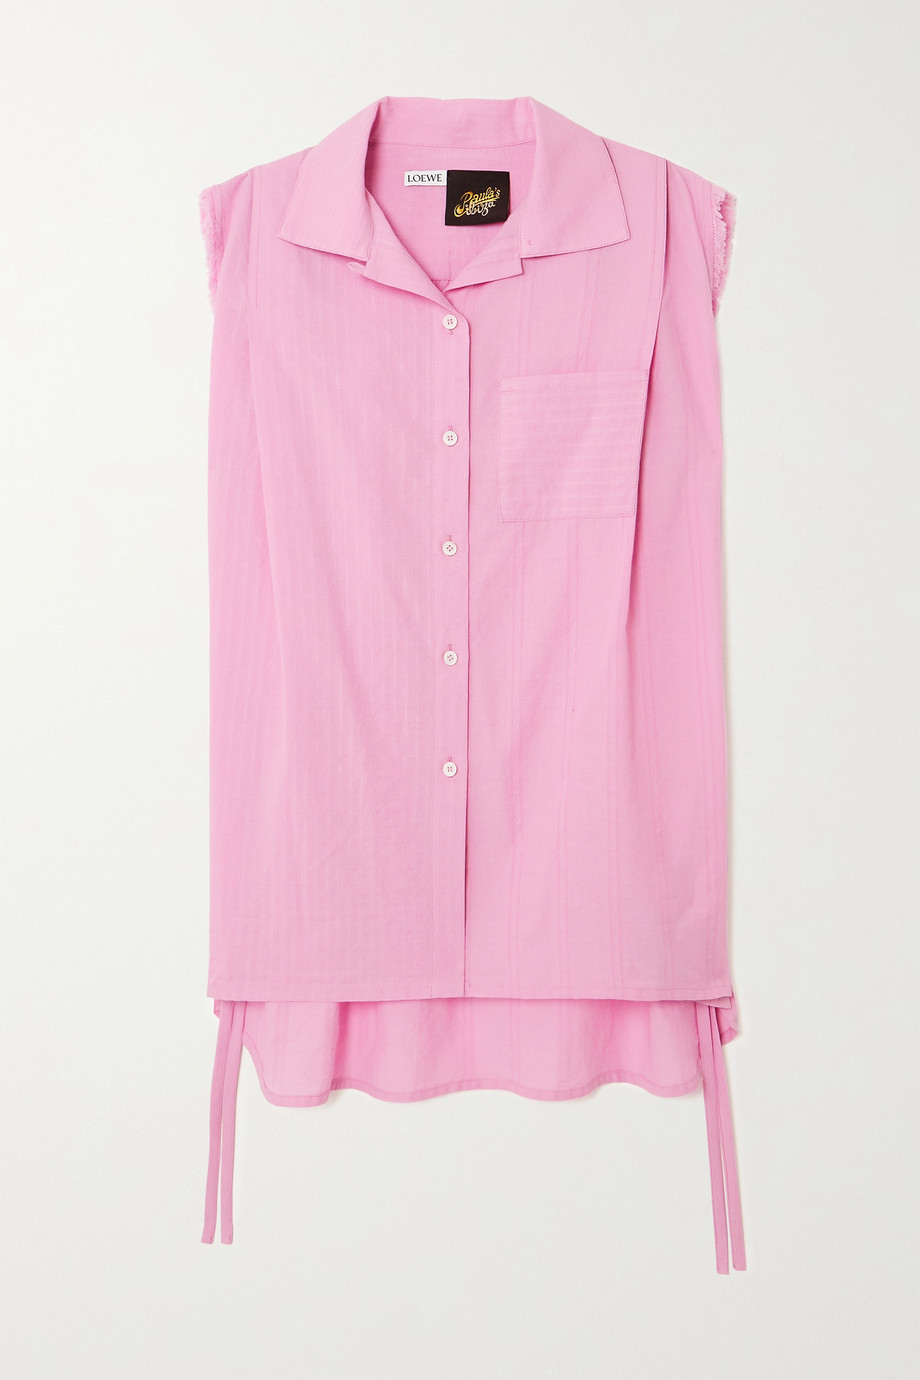 LOEWE + Paula's Ibiza tie-detailed frayed cotton blouse